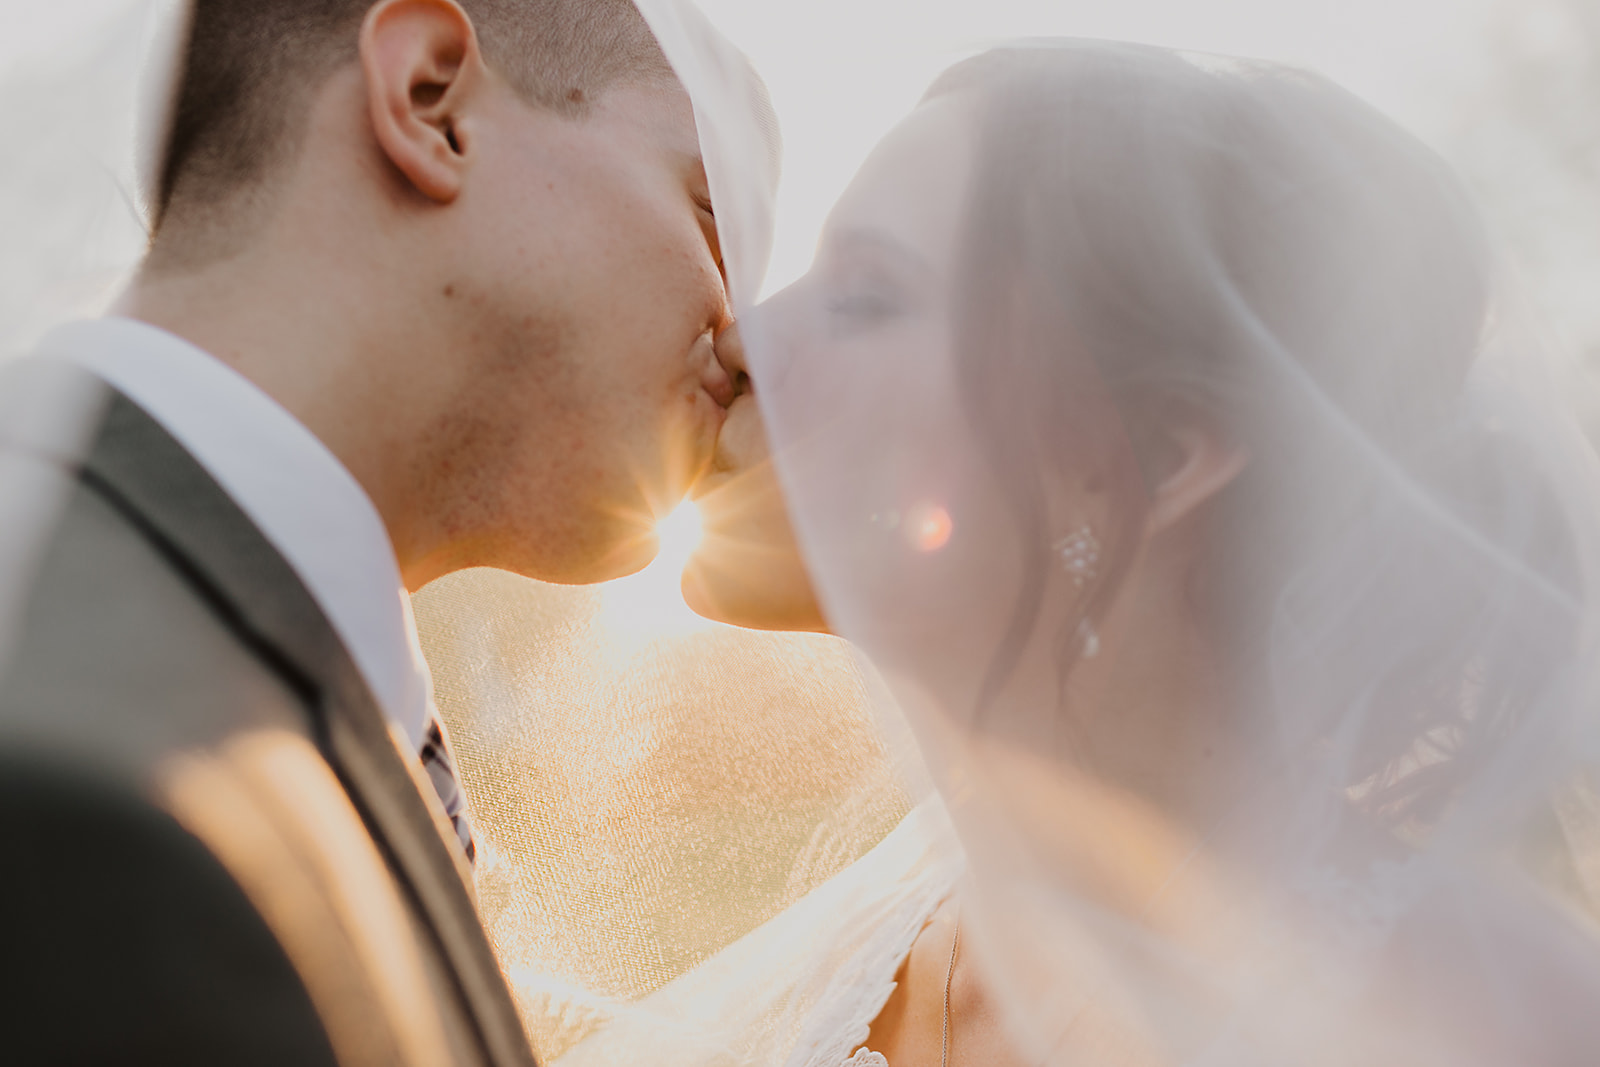 Kendra_and_Mattew_Indiana_Wedding_by_Emily_Wehner-916.jpg